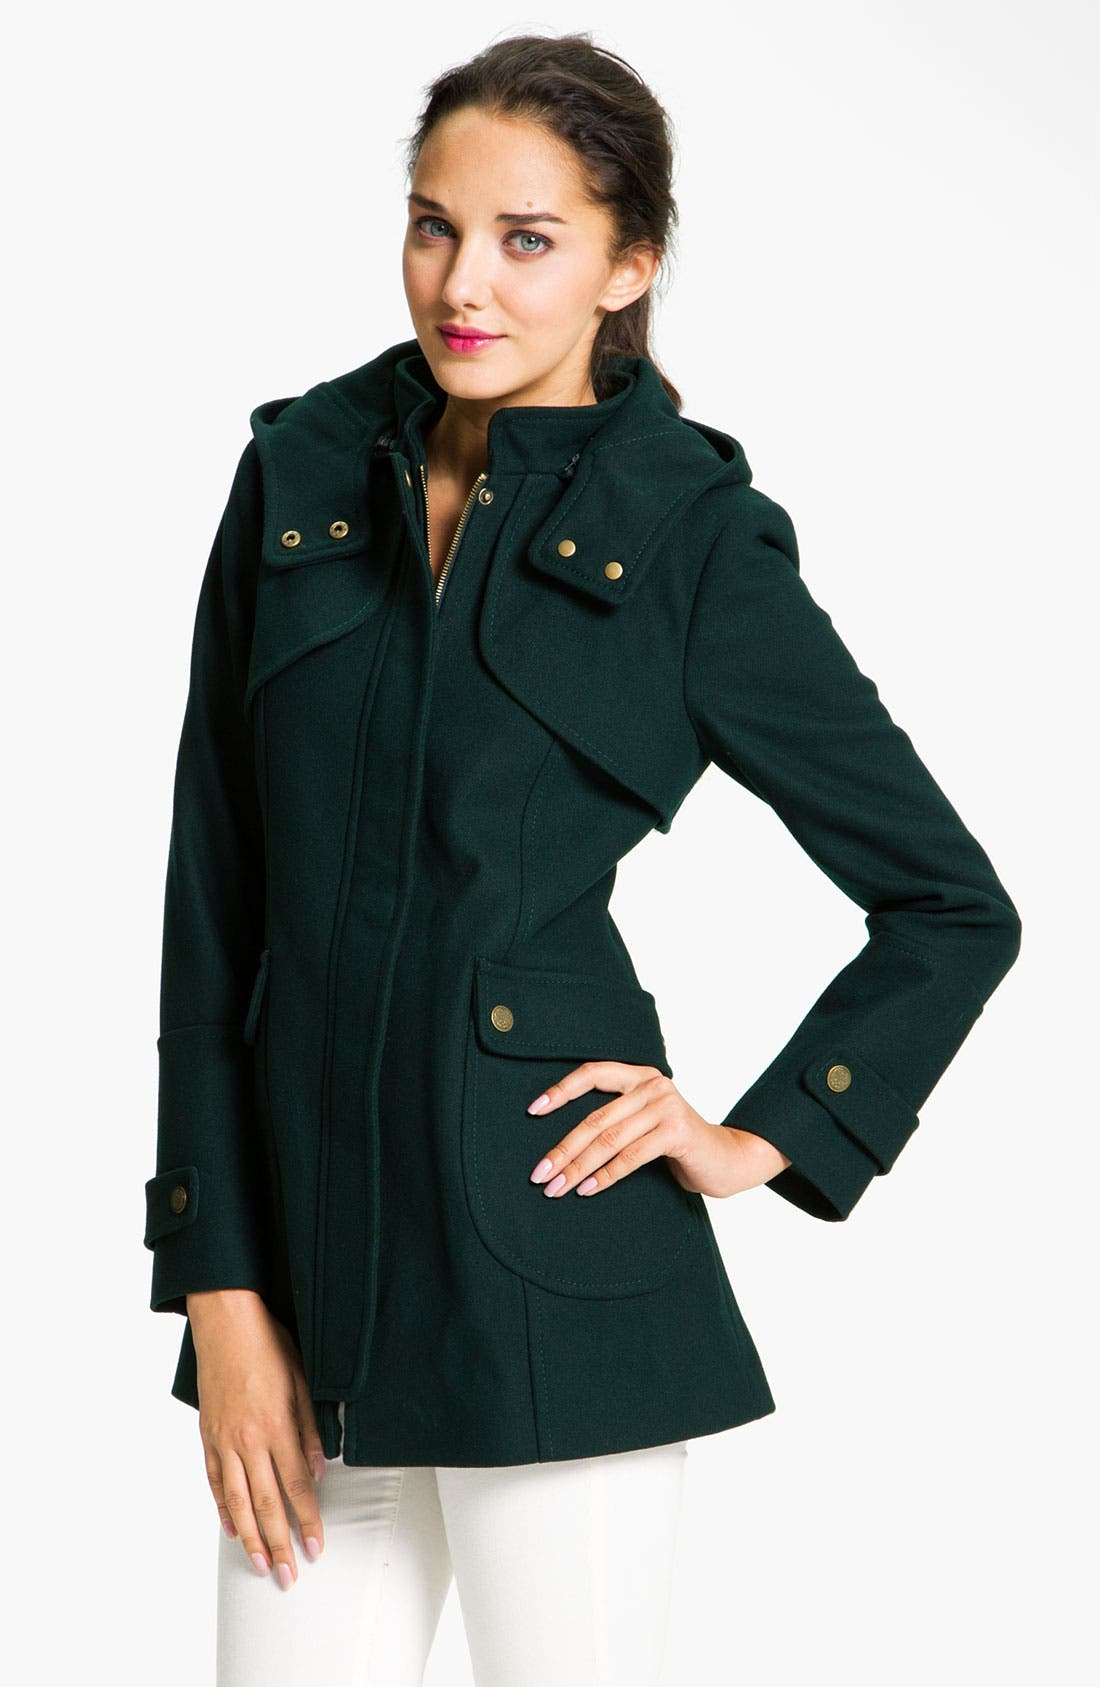 Alternate Image 1 Selected - Vince Camuto Wool Blend Jacket with Detachable Hood (Petite)